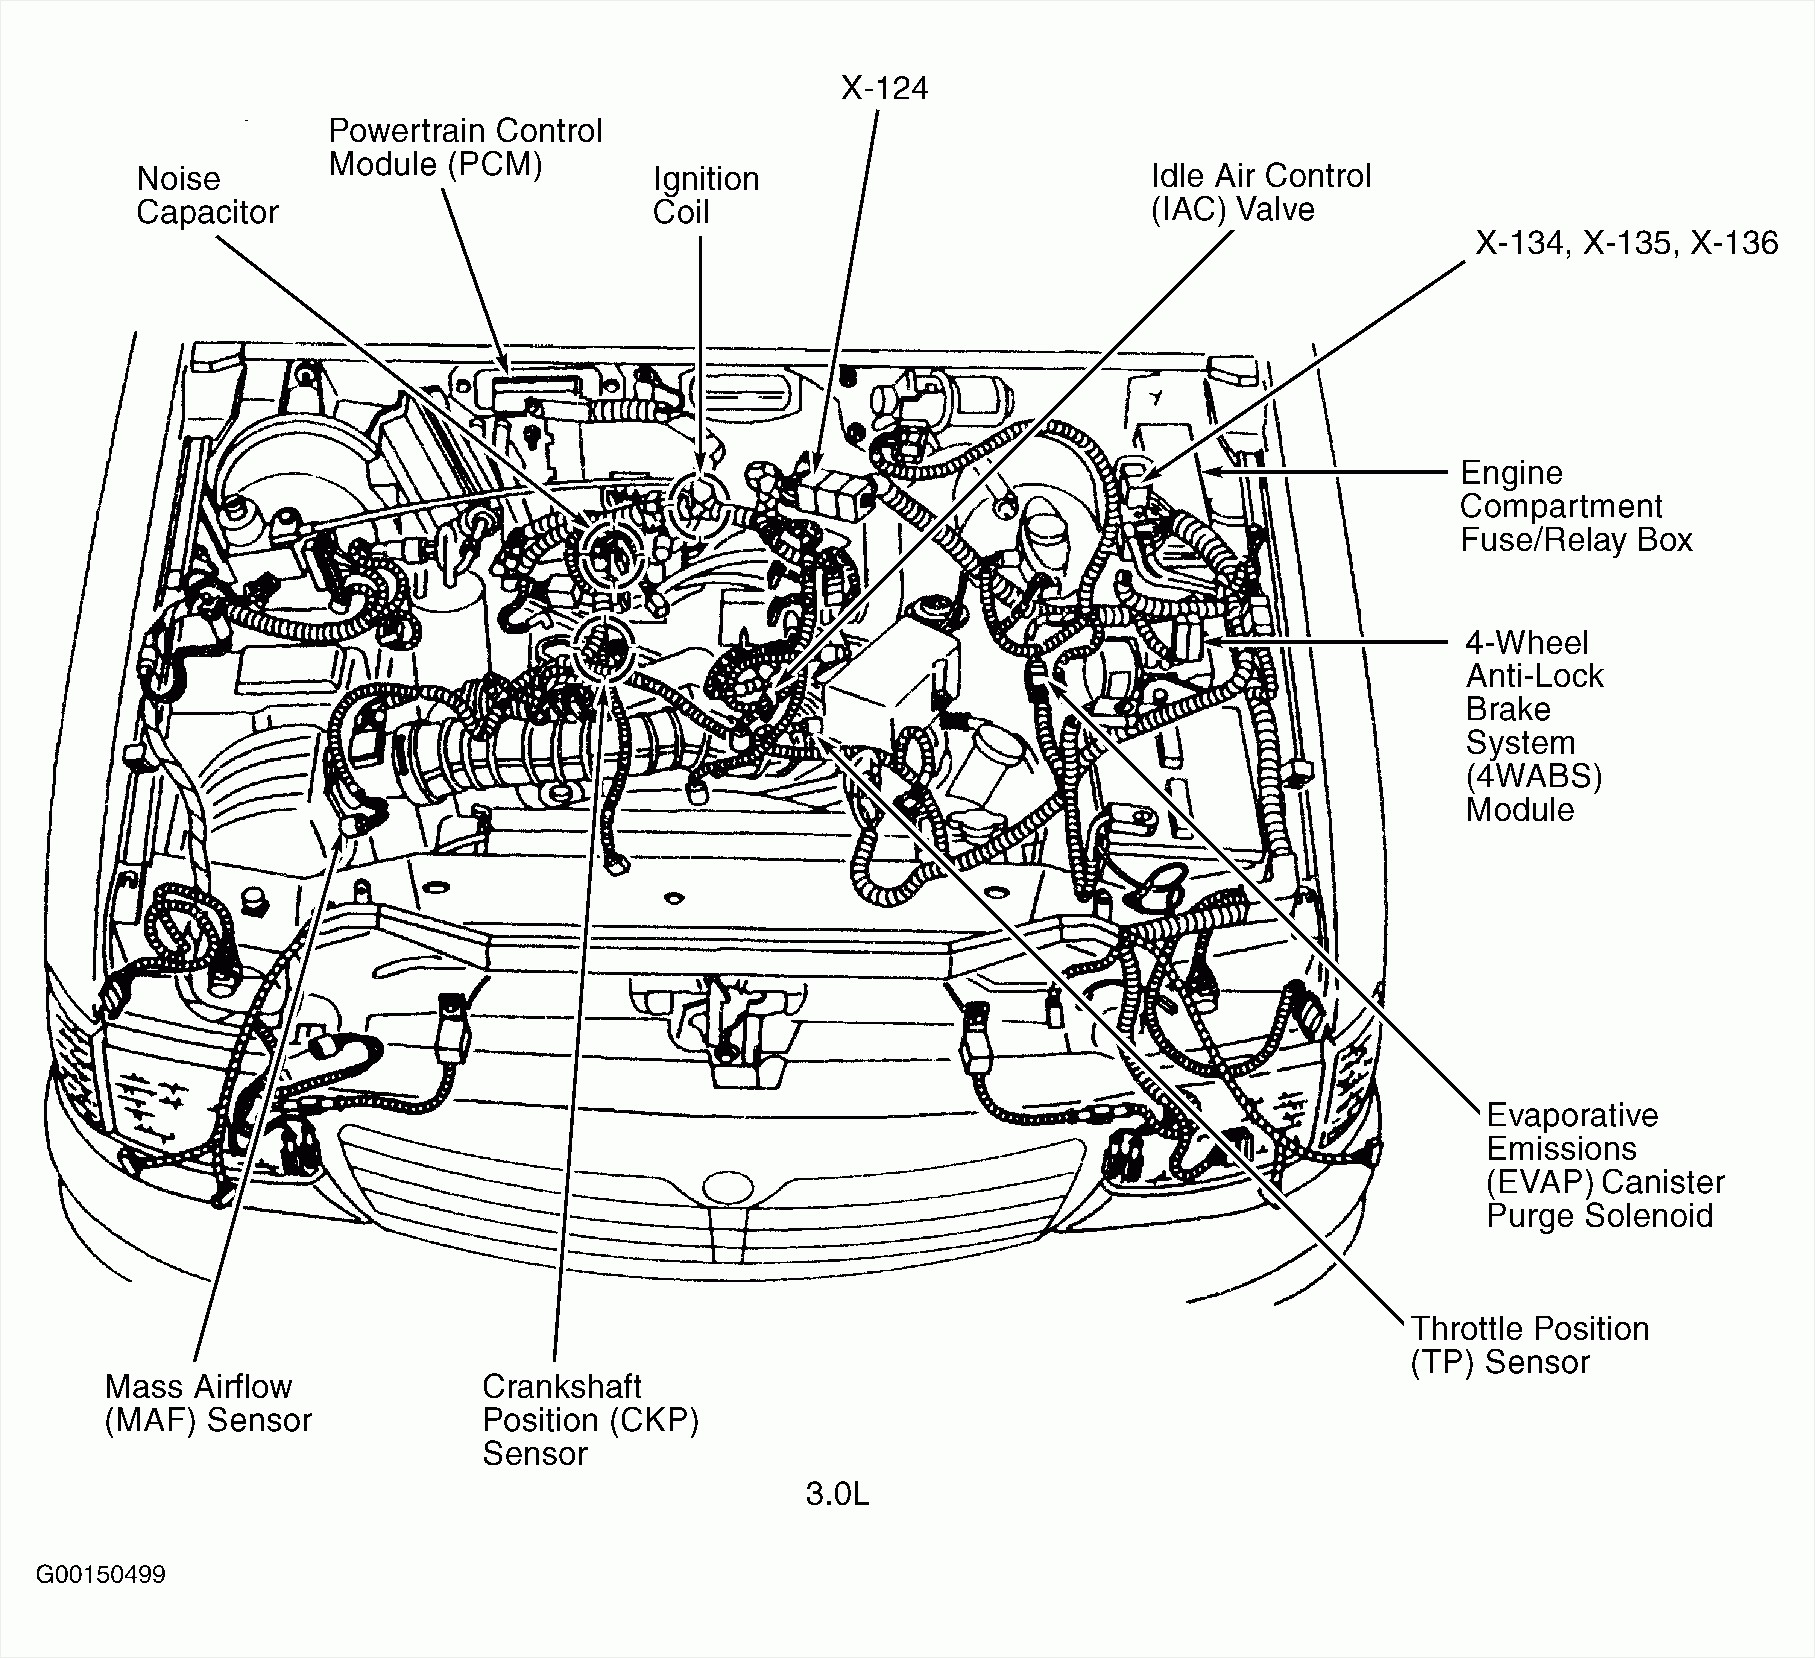 Late Ford 302 Alternator Wiring Diagram 1969 Mustang Voltage Regulator Wire Images Gallery